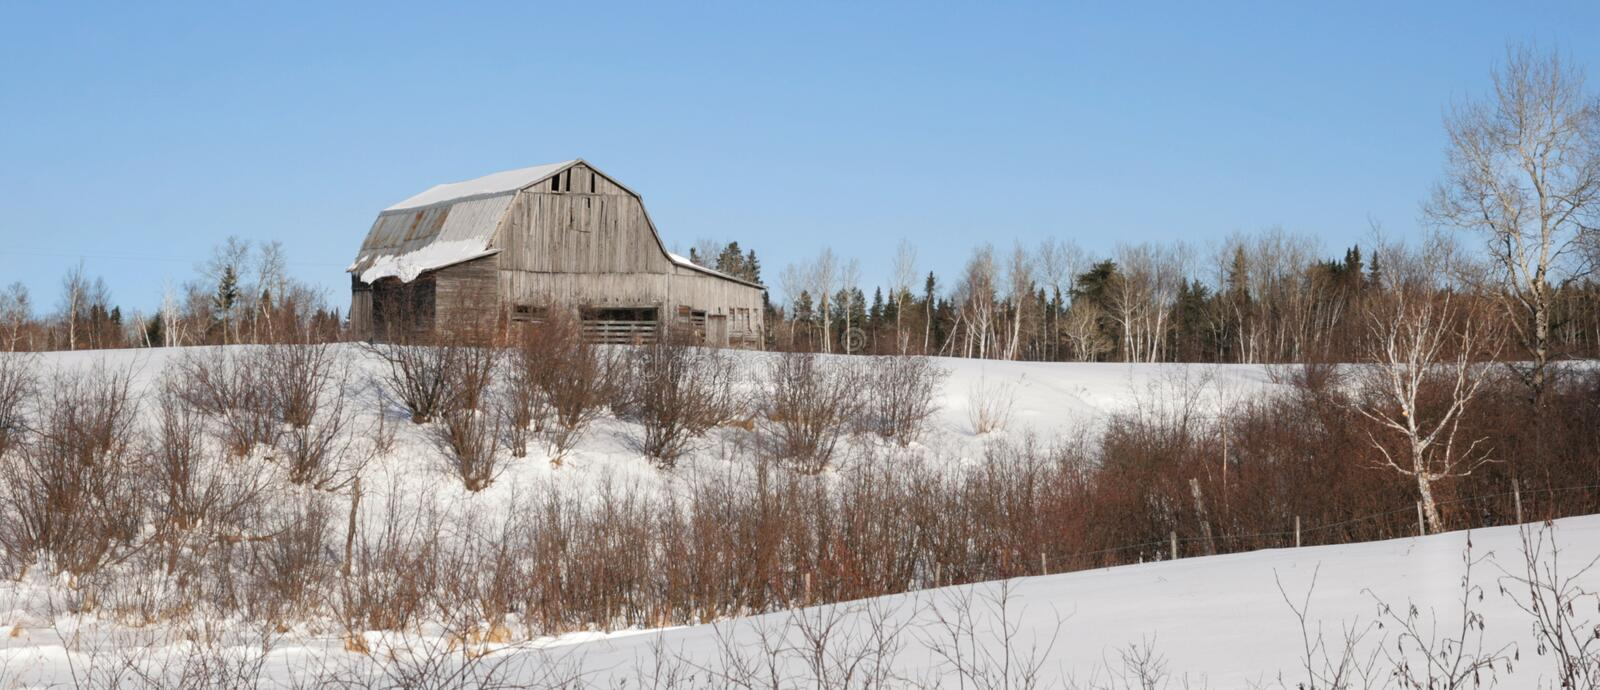 Download Barn in winter stock image. Image of landscape, winter - 23052791